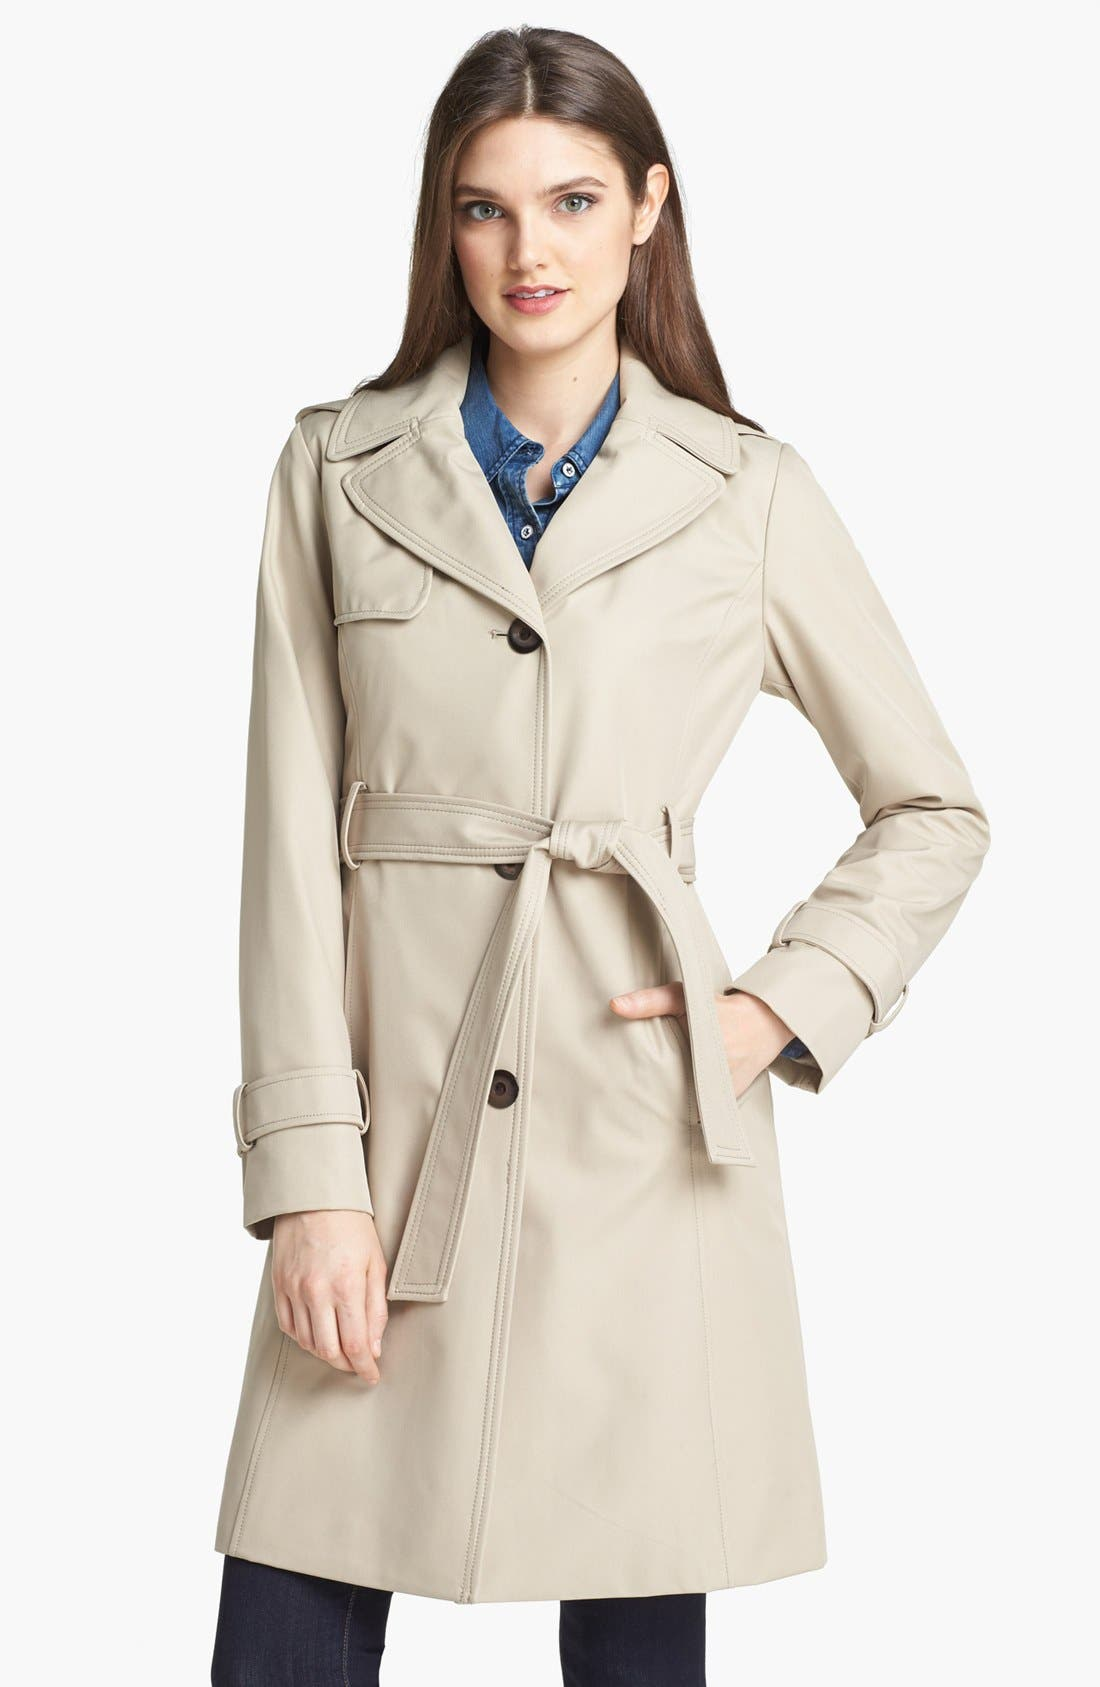 Alternate Image 1 Selected - Collection Ellen Tracy Trench Coat with Detachable Hood (Nordstrom Exclusive)